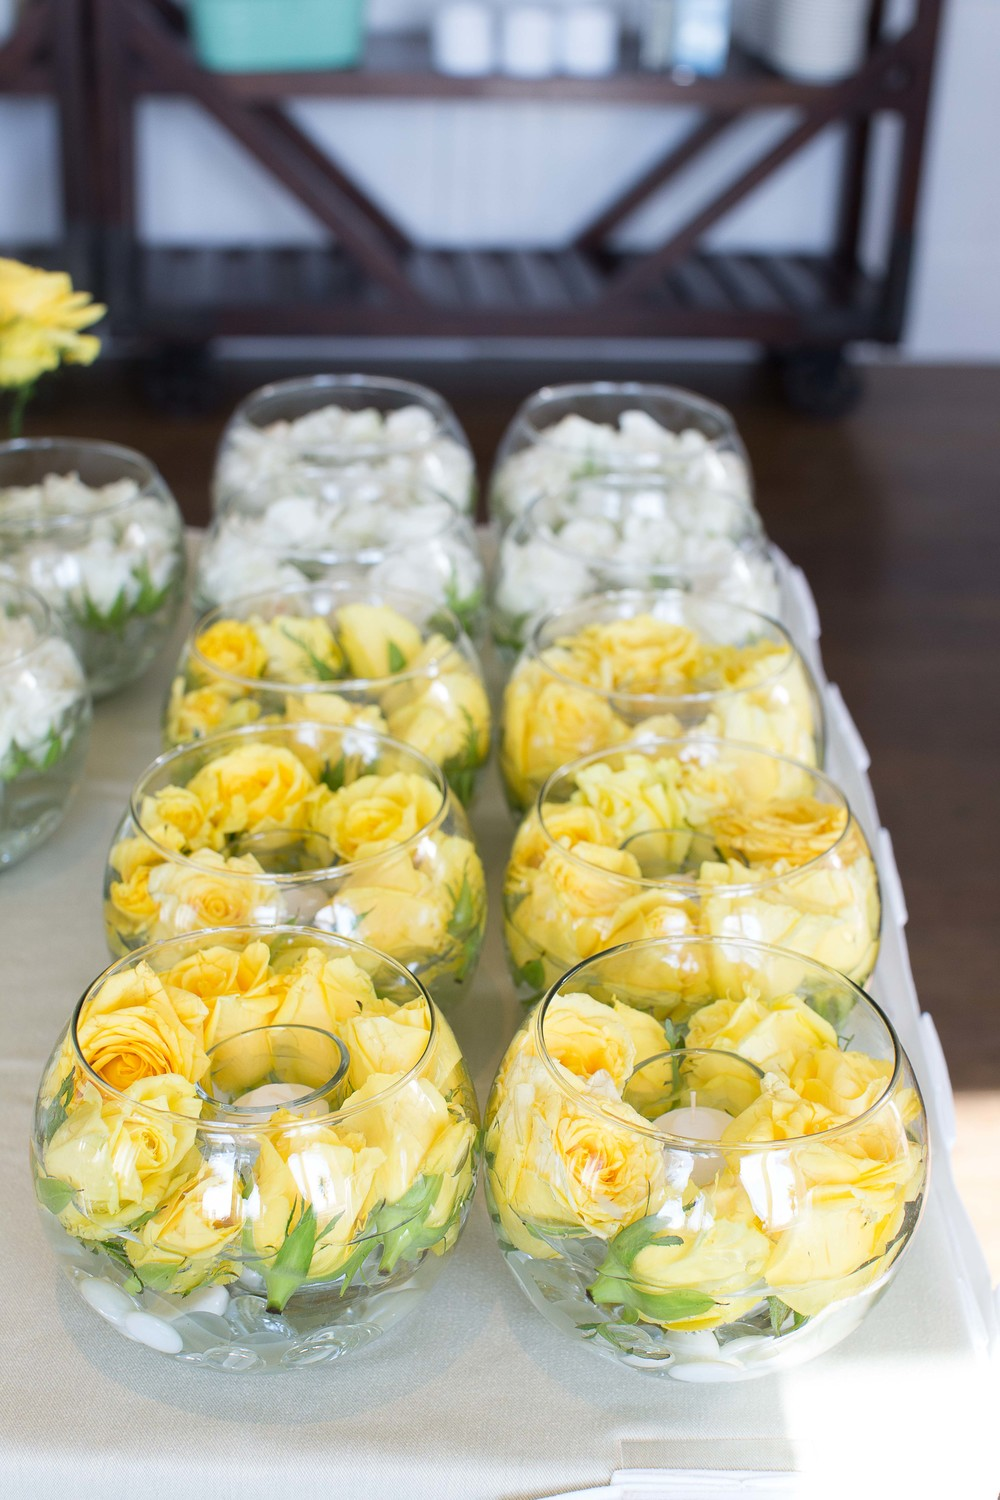 Yellow simple and classic wedding santa monica california ievent ievent boutique wedding blog nbspwhite and yellow are one of the classical schemes junglespirit Image collections